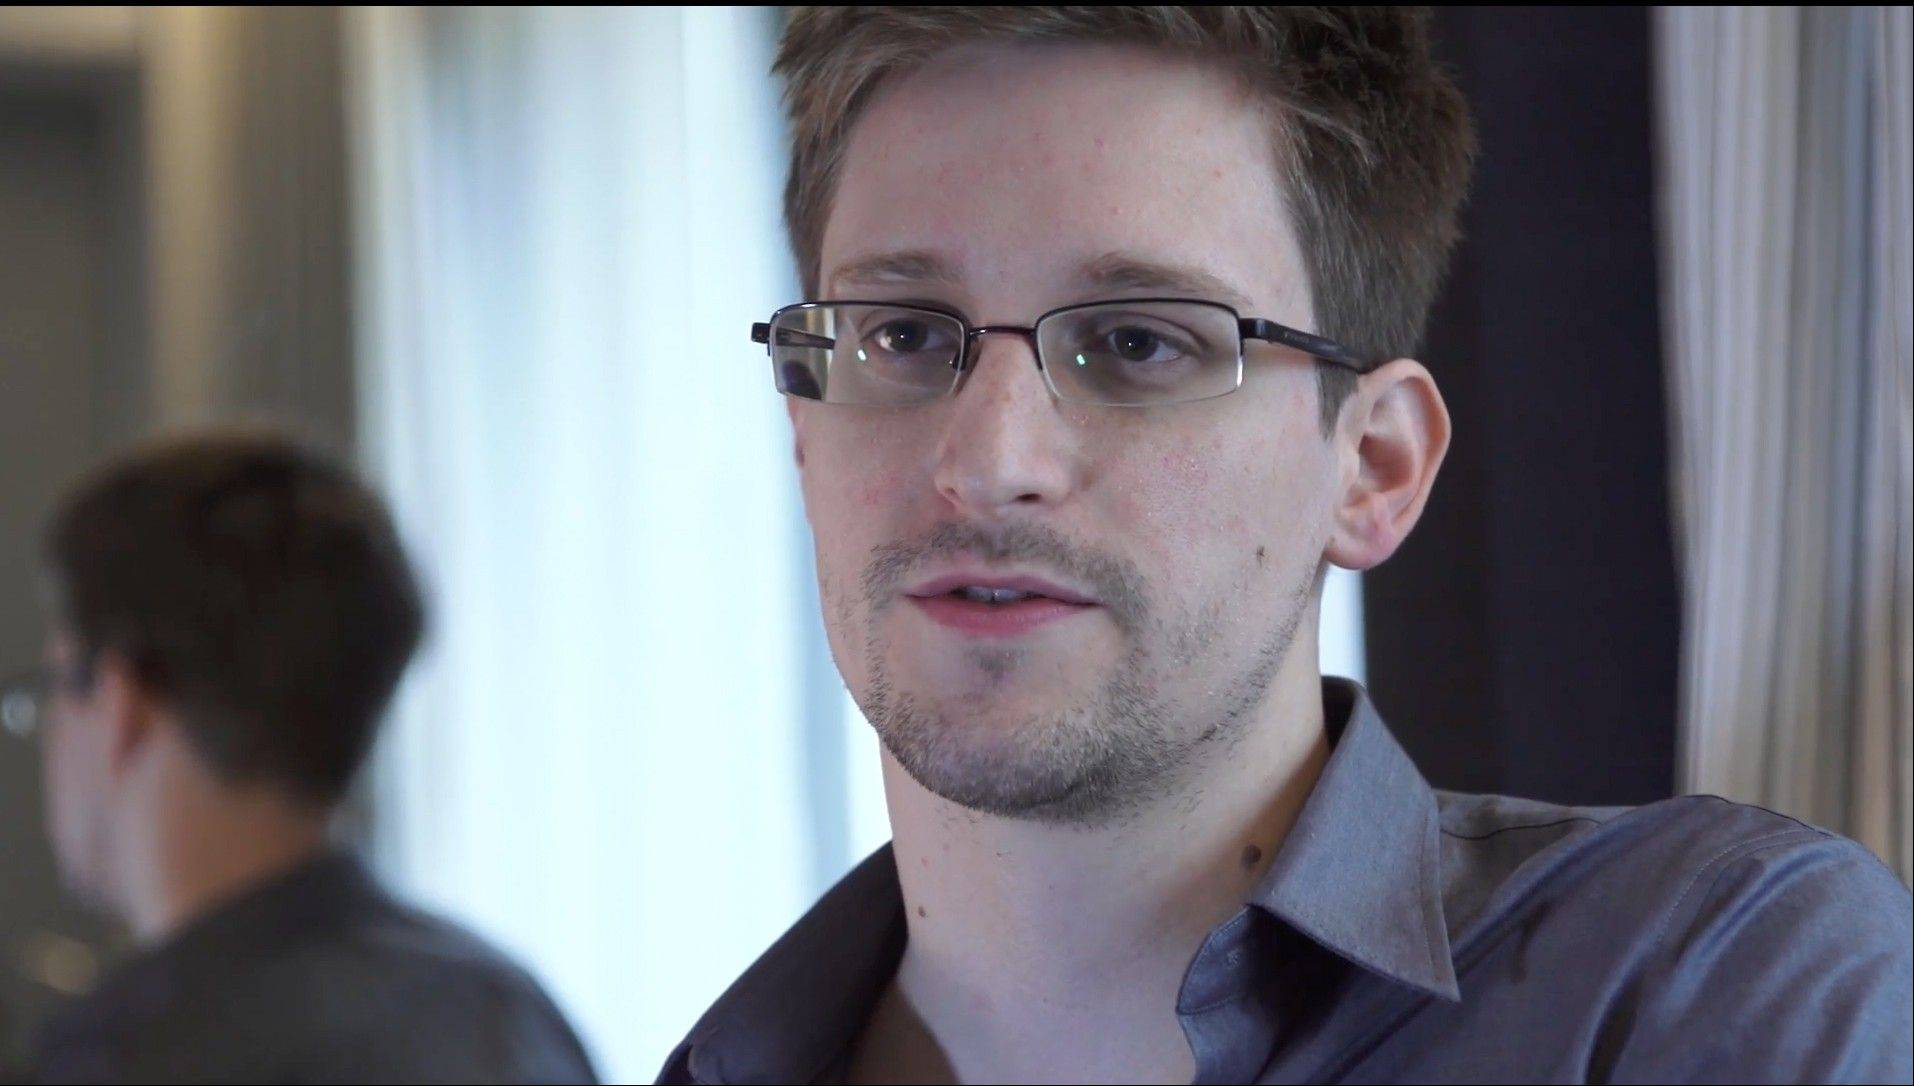 This Sunday, June 9, 2013 file photo provided by The Guardian Newspaper in London shows Edward Snowden, in Hong Kong. US leaker Edward Snowden�s father is making plans to travel to Russia to visit his son. Snowden has been granted a document that allows him to leave the transit zone of a Moscow airport and enter Russia. Snowden has applied for temporary asylum in Rusia last week after his attempts to leave the airport were thwarted. The United States wants him sent home to face prosecution for espionage.